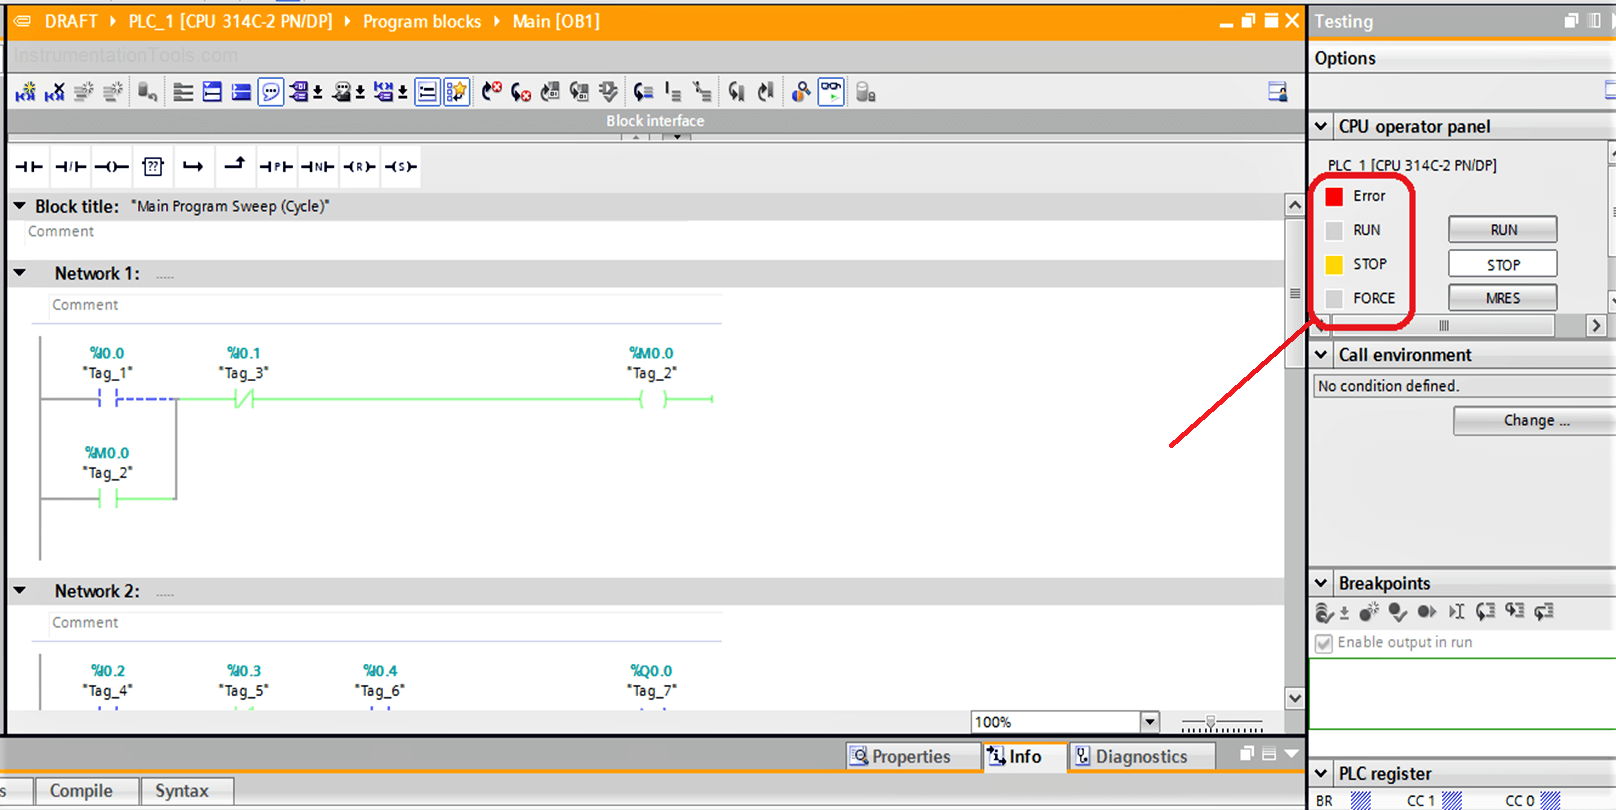 PLC Running and Stop Mode